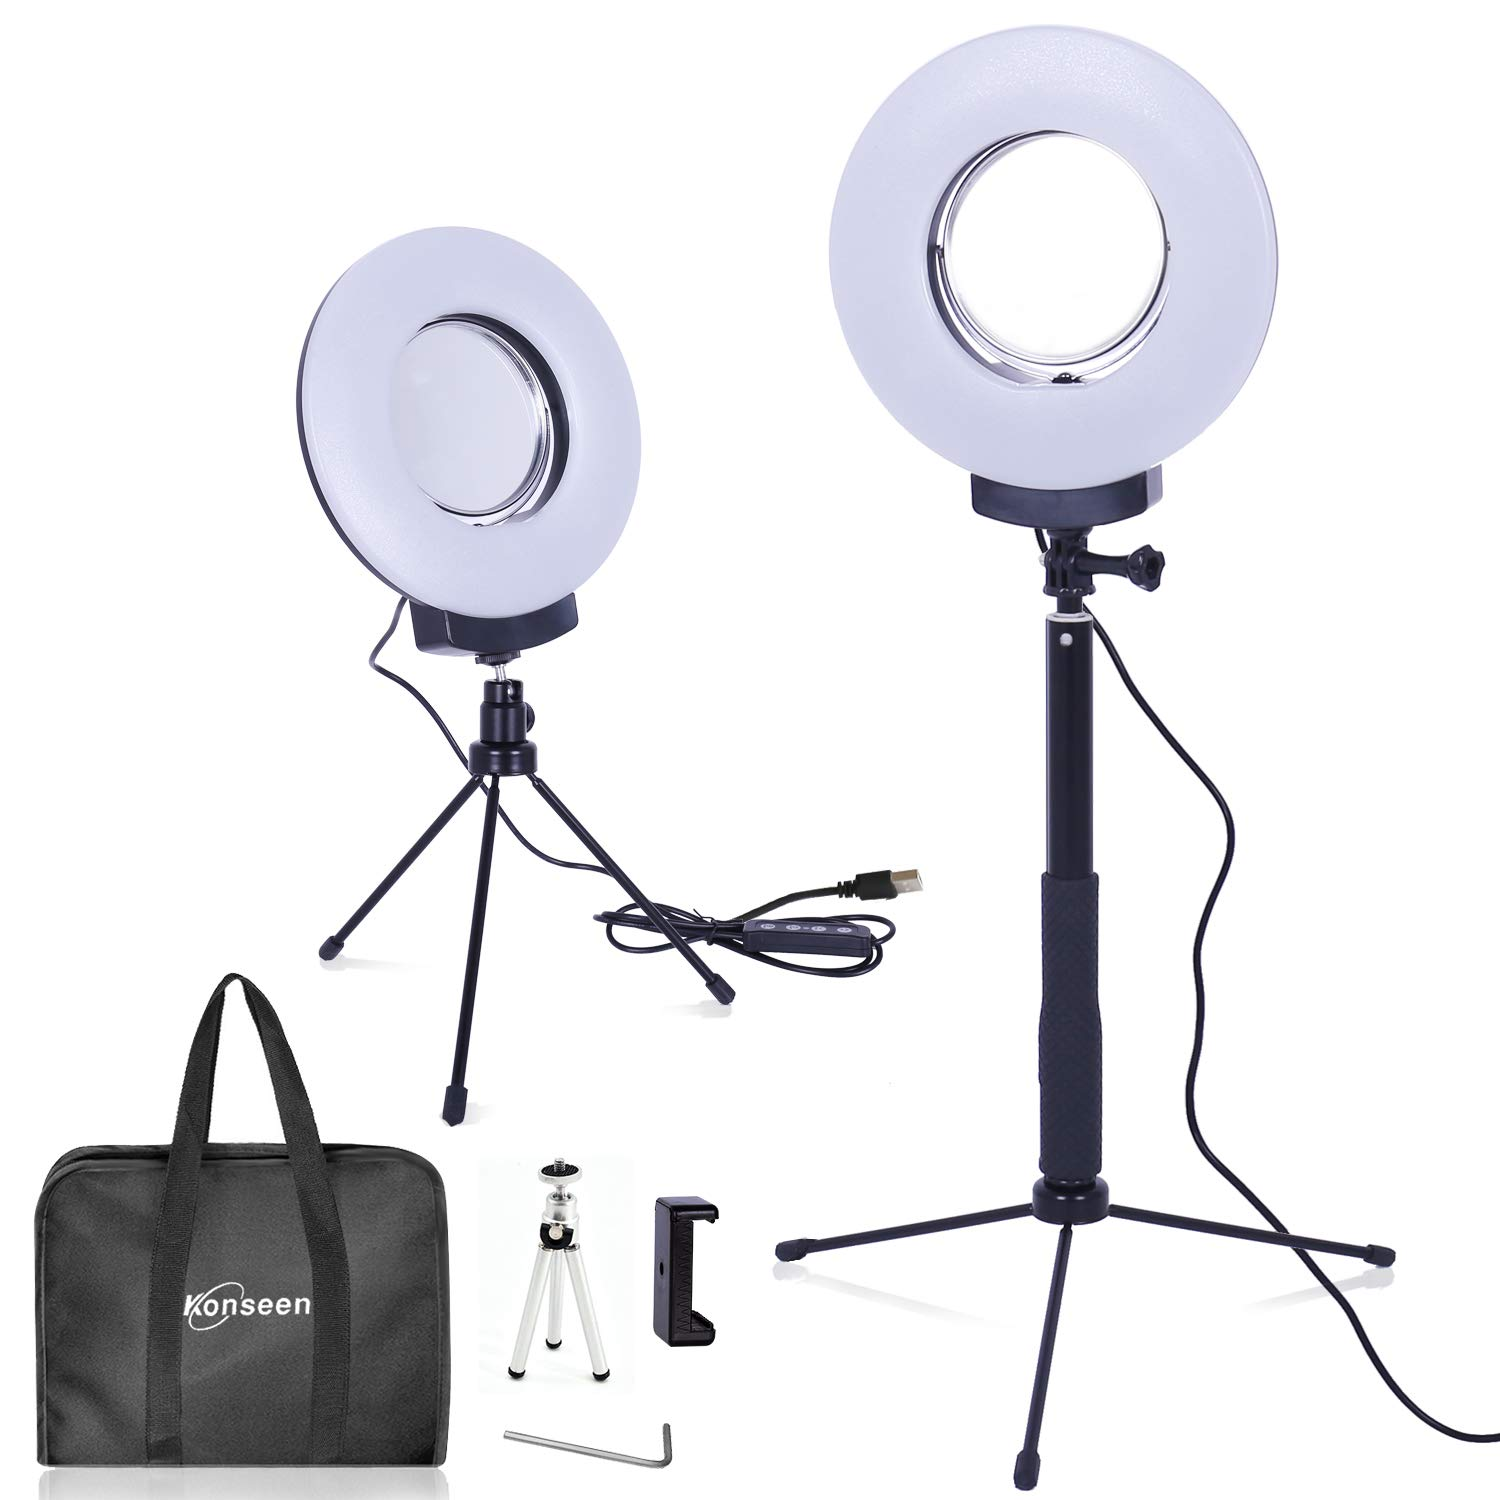 8'' Dimmable Ring Light Selfie Live Stream Continuous Output Lighting&Adjust Stick Stand&4'' Mirror&Phone Holder for Makeup Photography LED Ring Lamp Outdoor Camera Photo Video 3 Color Lighting Mode Kit